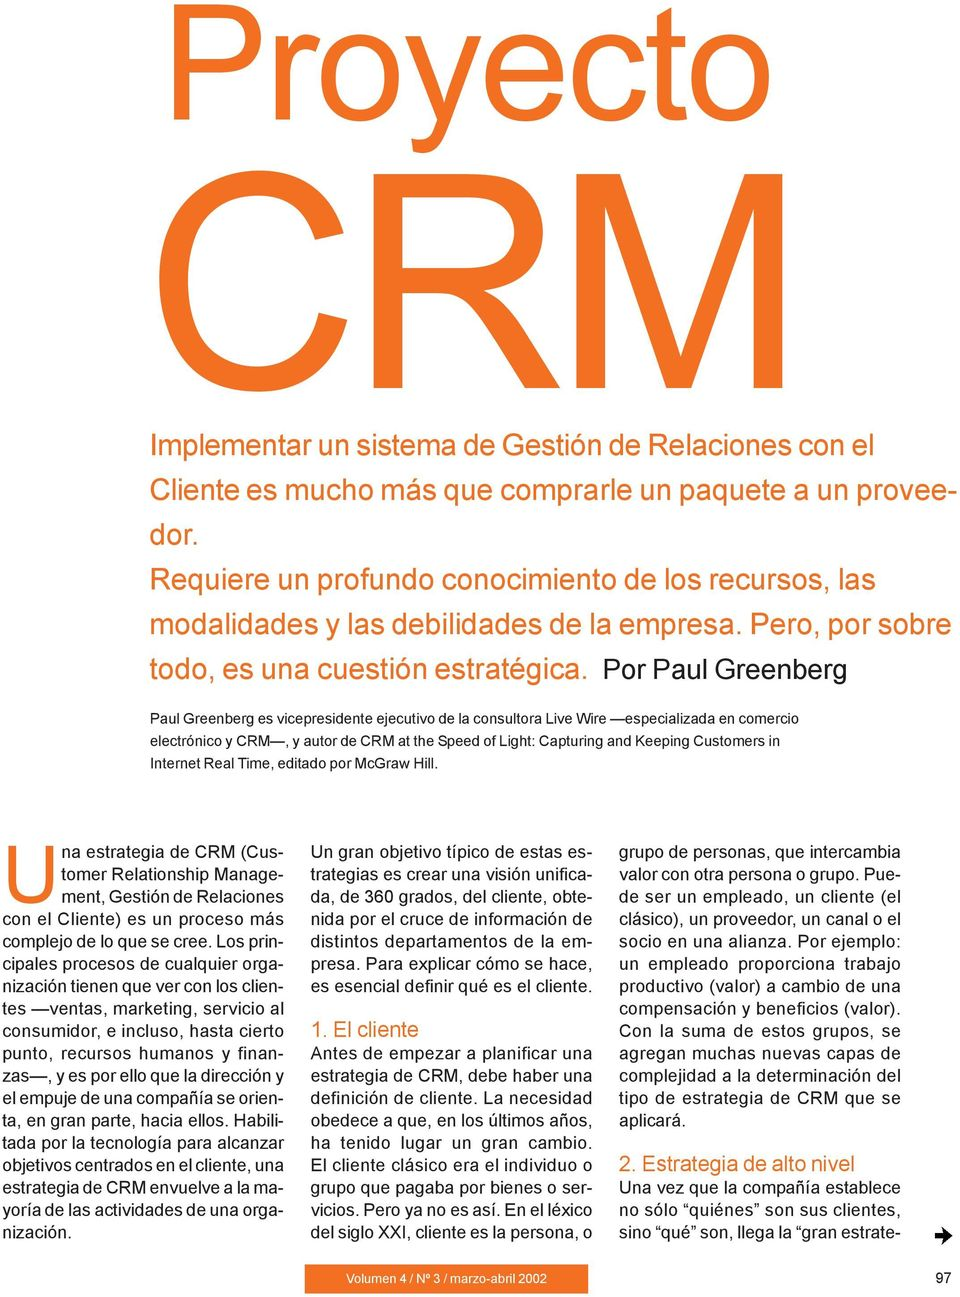 Por Paul Greenberg Paul Greenberg es vicepresidente ejecutivo de la consultora Live Wire especializada en comercio electrónico y CRM, y autor de CRM at the Speed of Light: Capturing and Keeping